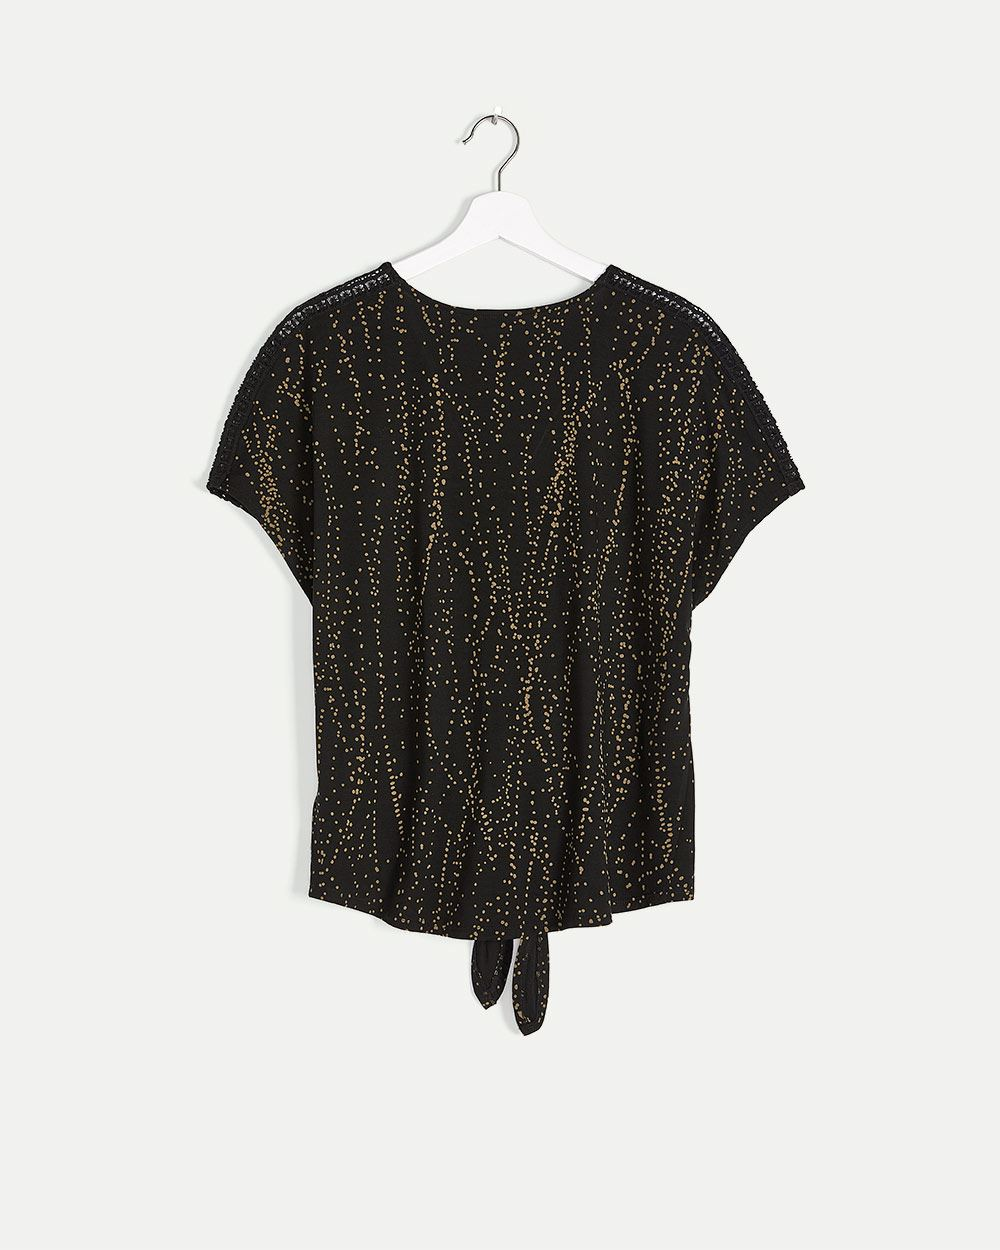 Front Knot Printed Tee with Crochet Inserts